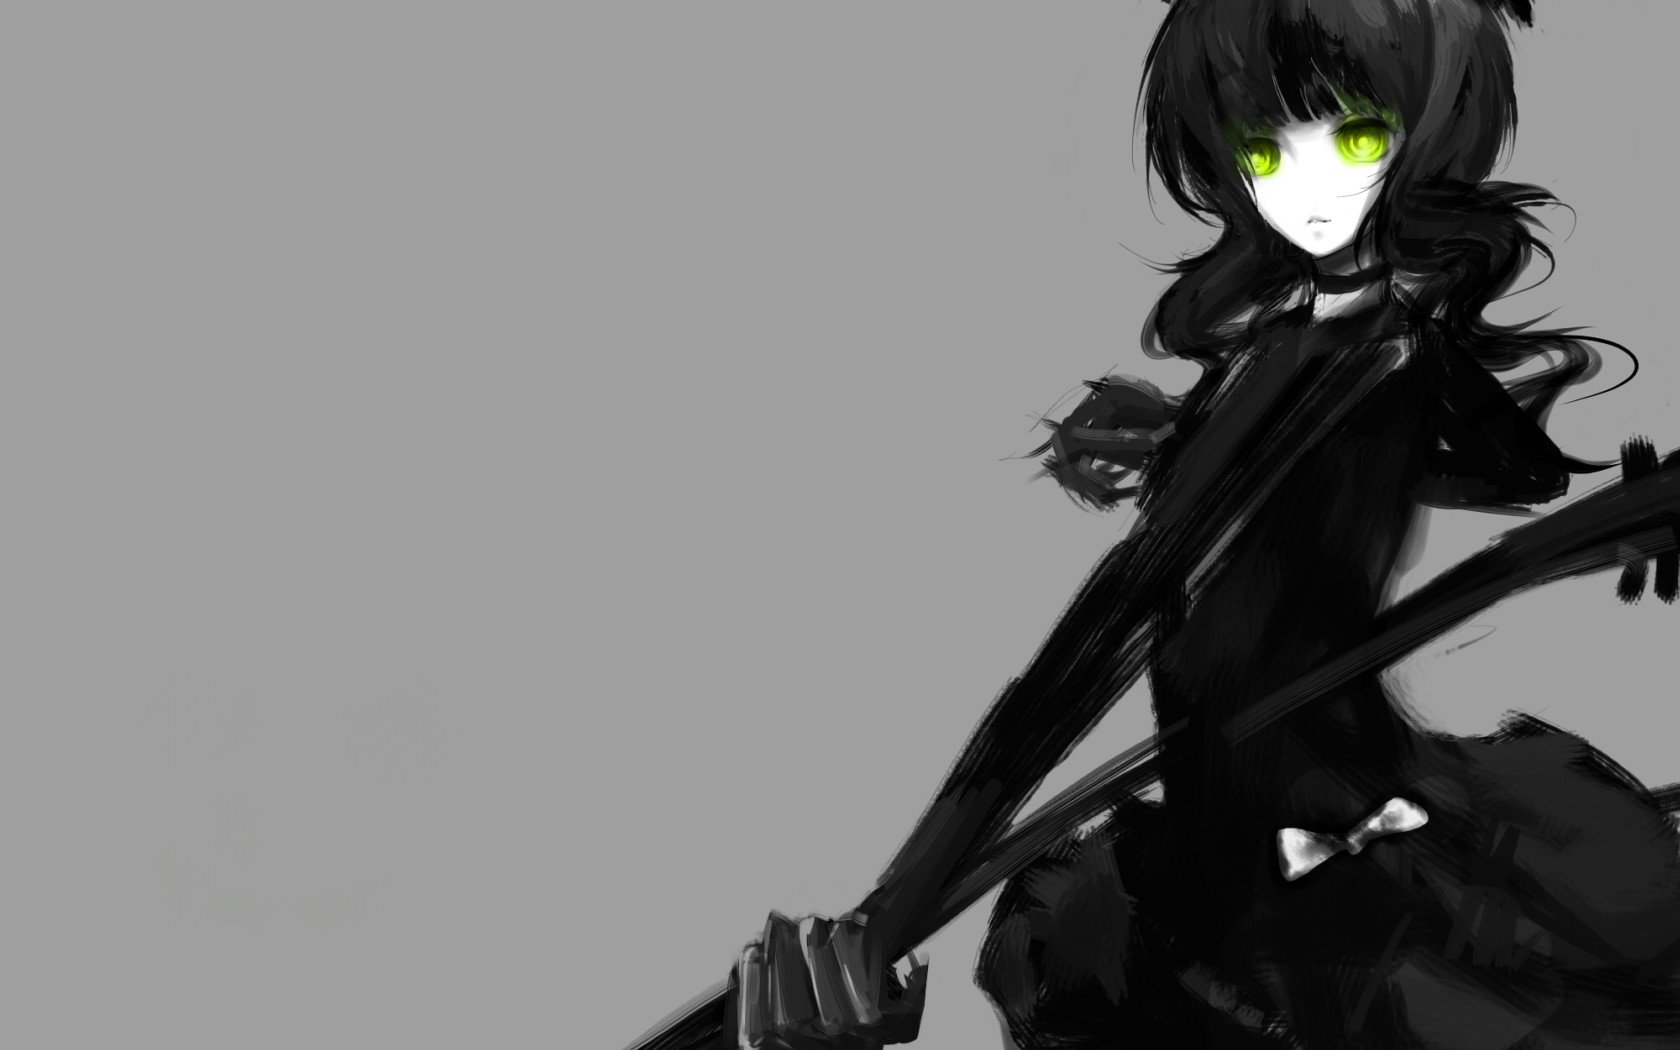 Download hd 1680x1050 Dead Master (Black Rock Shooter) PC background ID:453643 for free